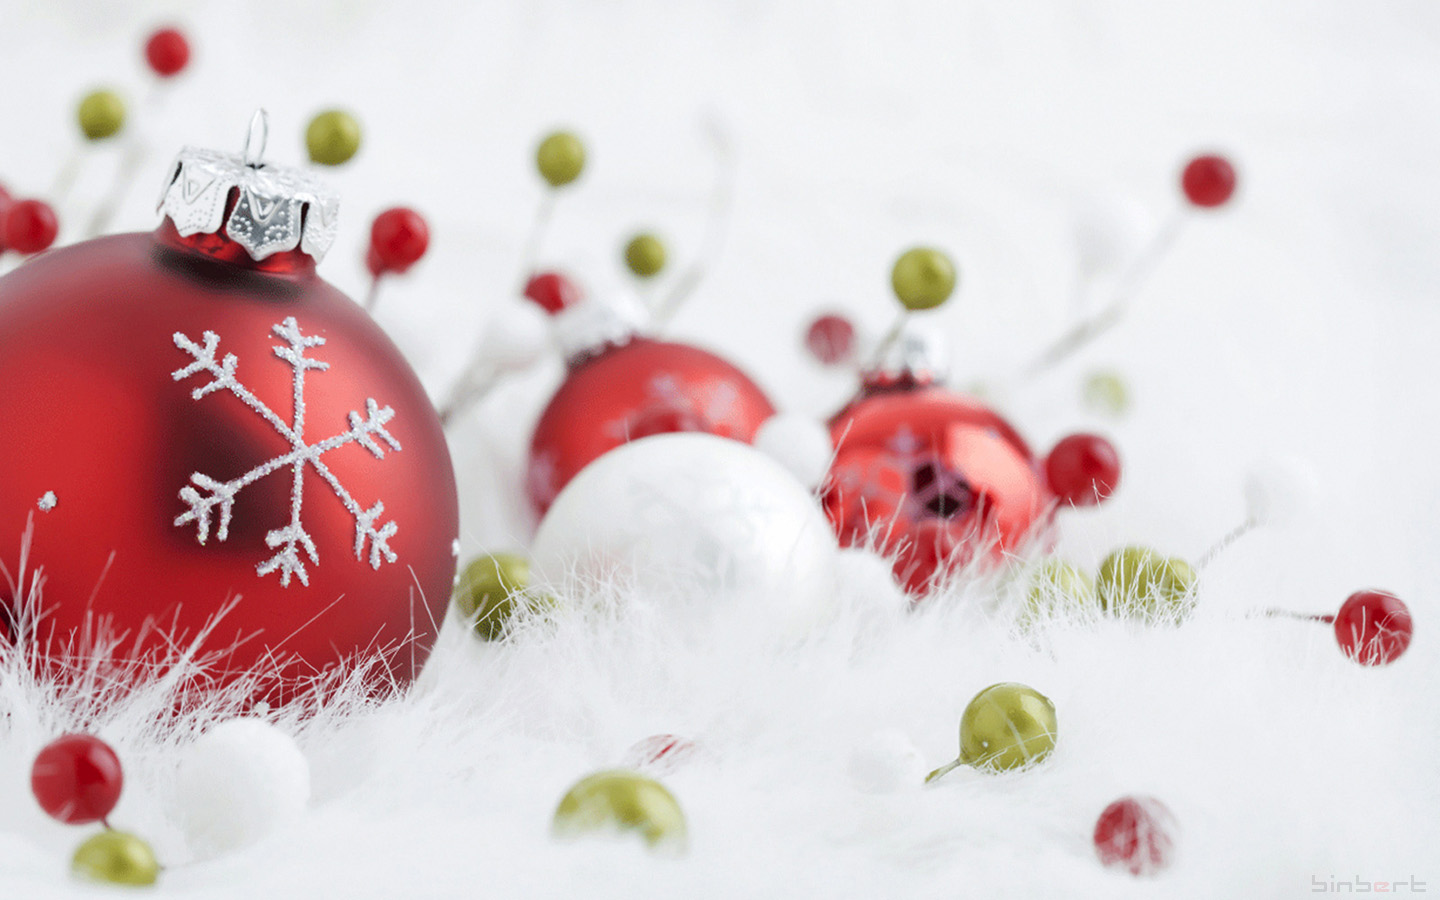 Christmas special wallpapers and theme for windows 7 Binbert 1440x900